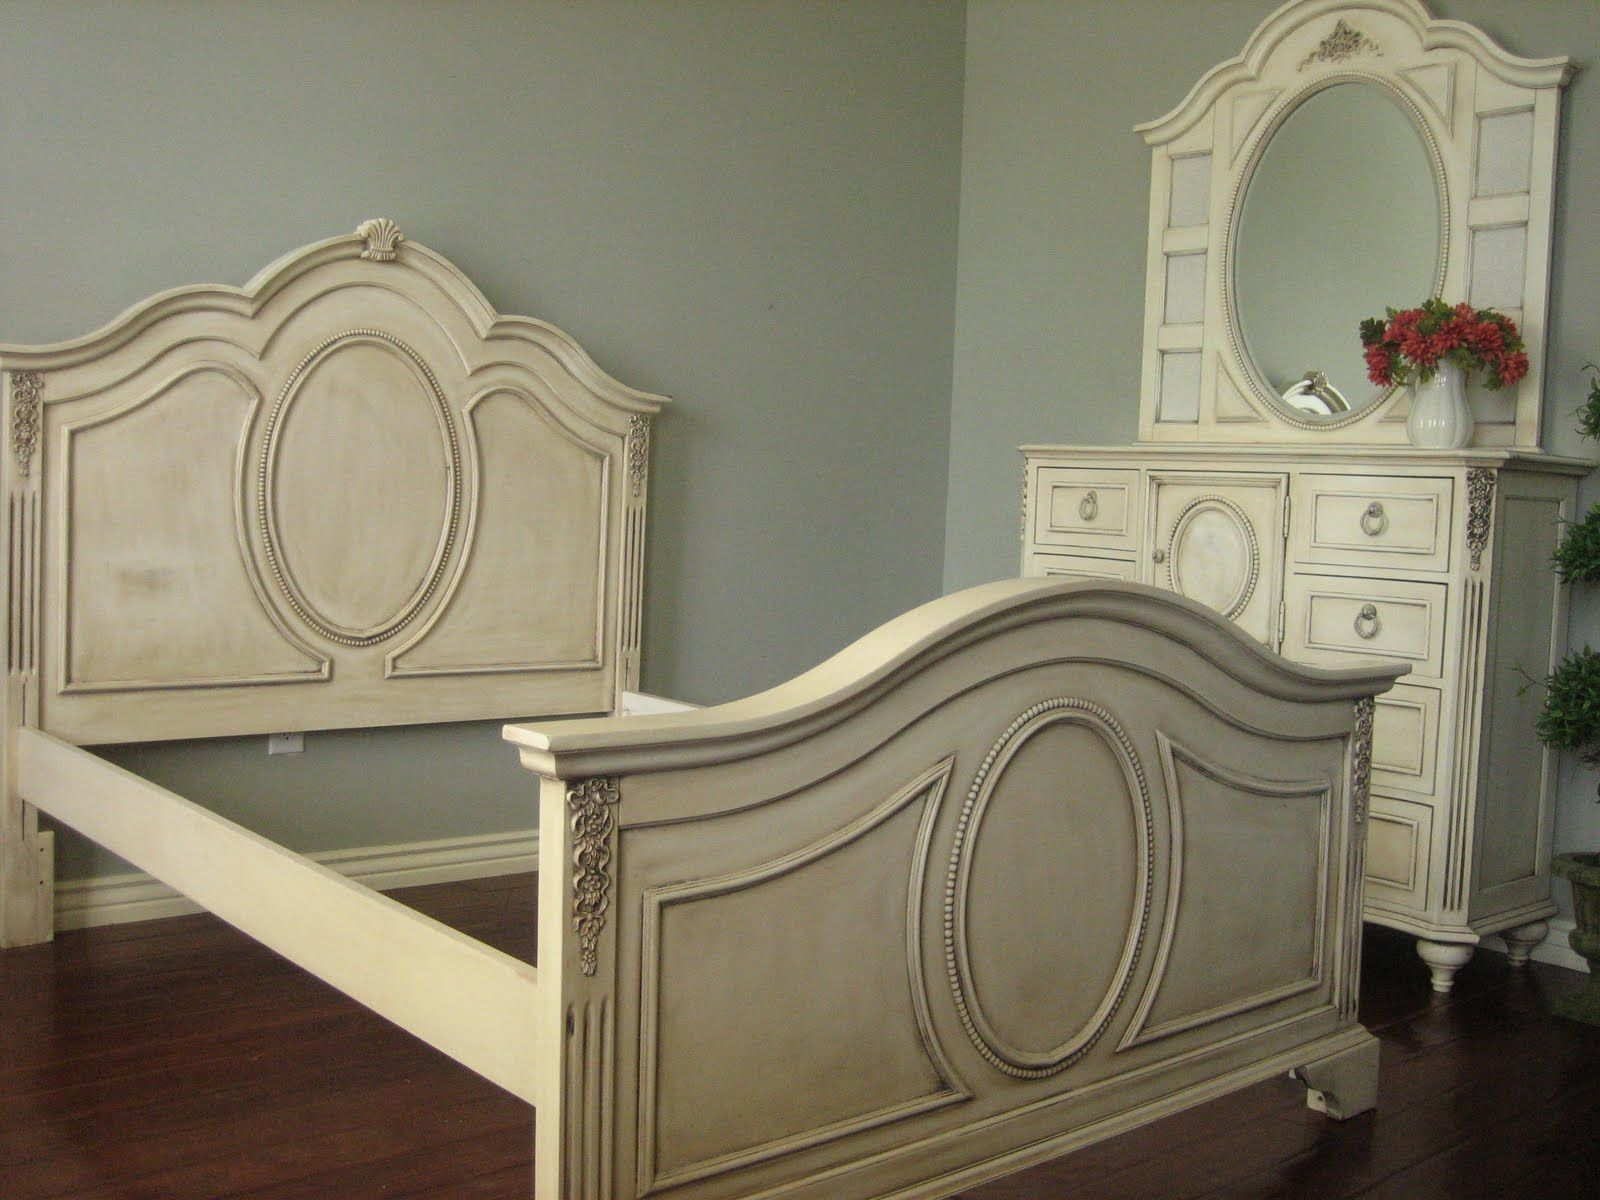 17 Best images about Furniture shabby chic on Pinterest   Shabby chic  bedrooms  Robin egg blue and Shabby. 17 Best images about Furniture shabby chic on Pinterest   Shabby